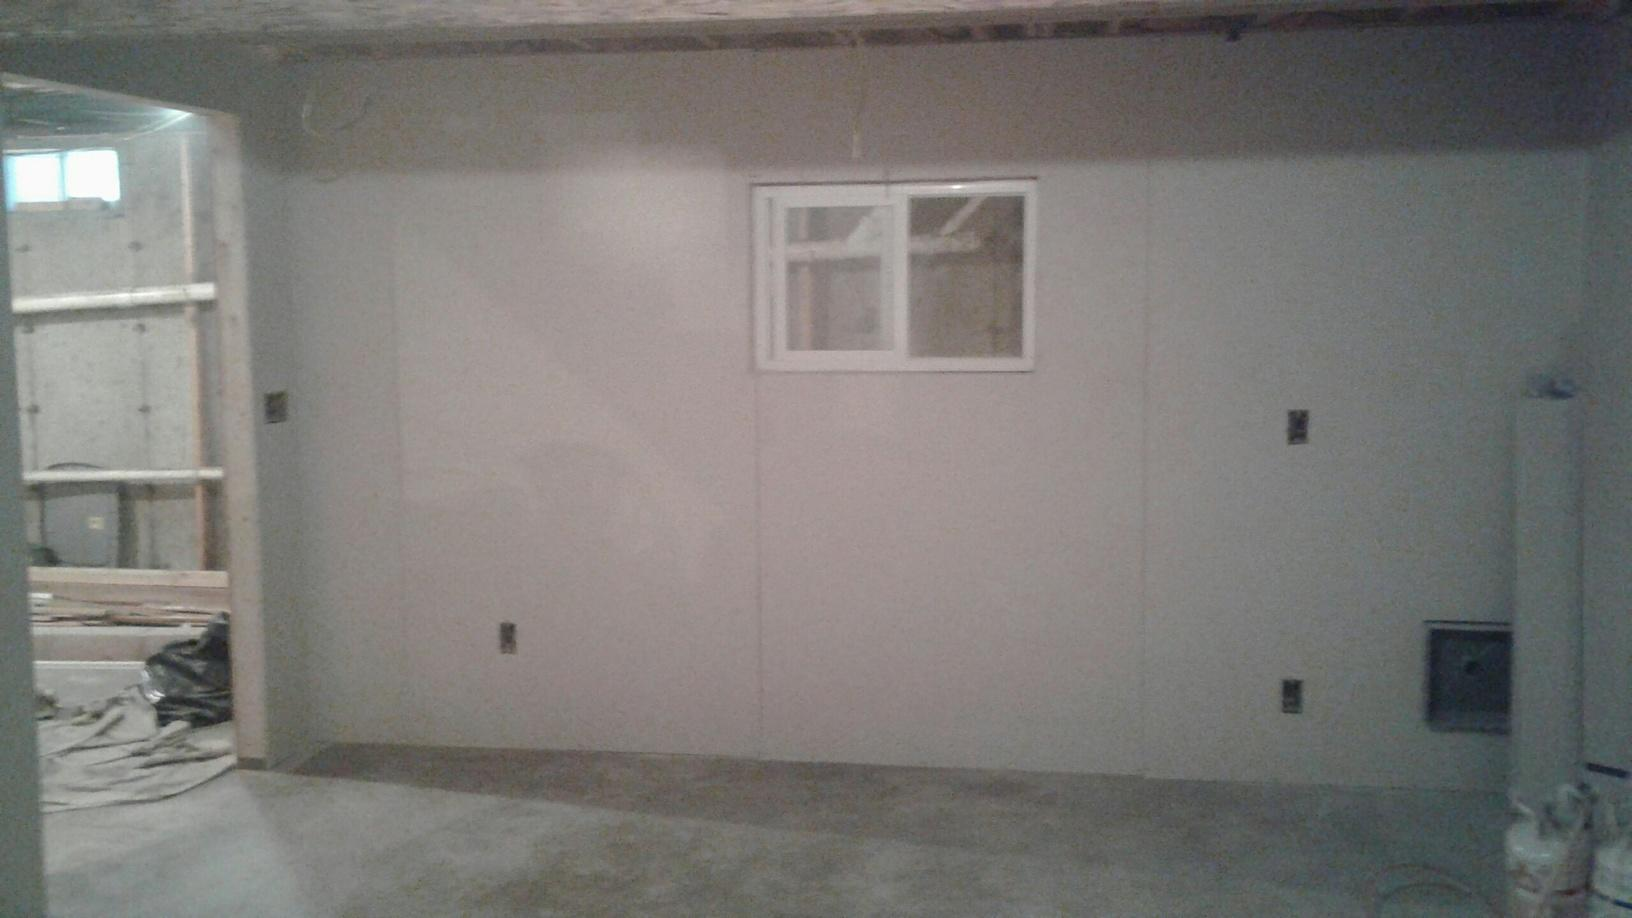 Basement Wall Installation in Porters Corners, NY - After Photo